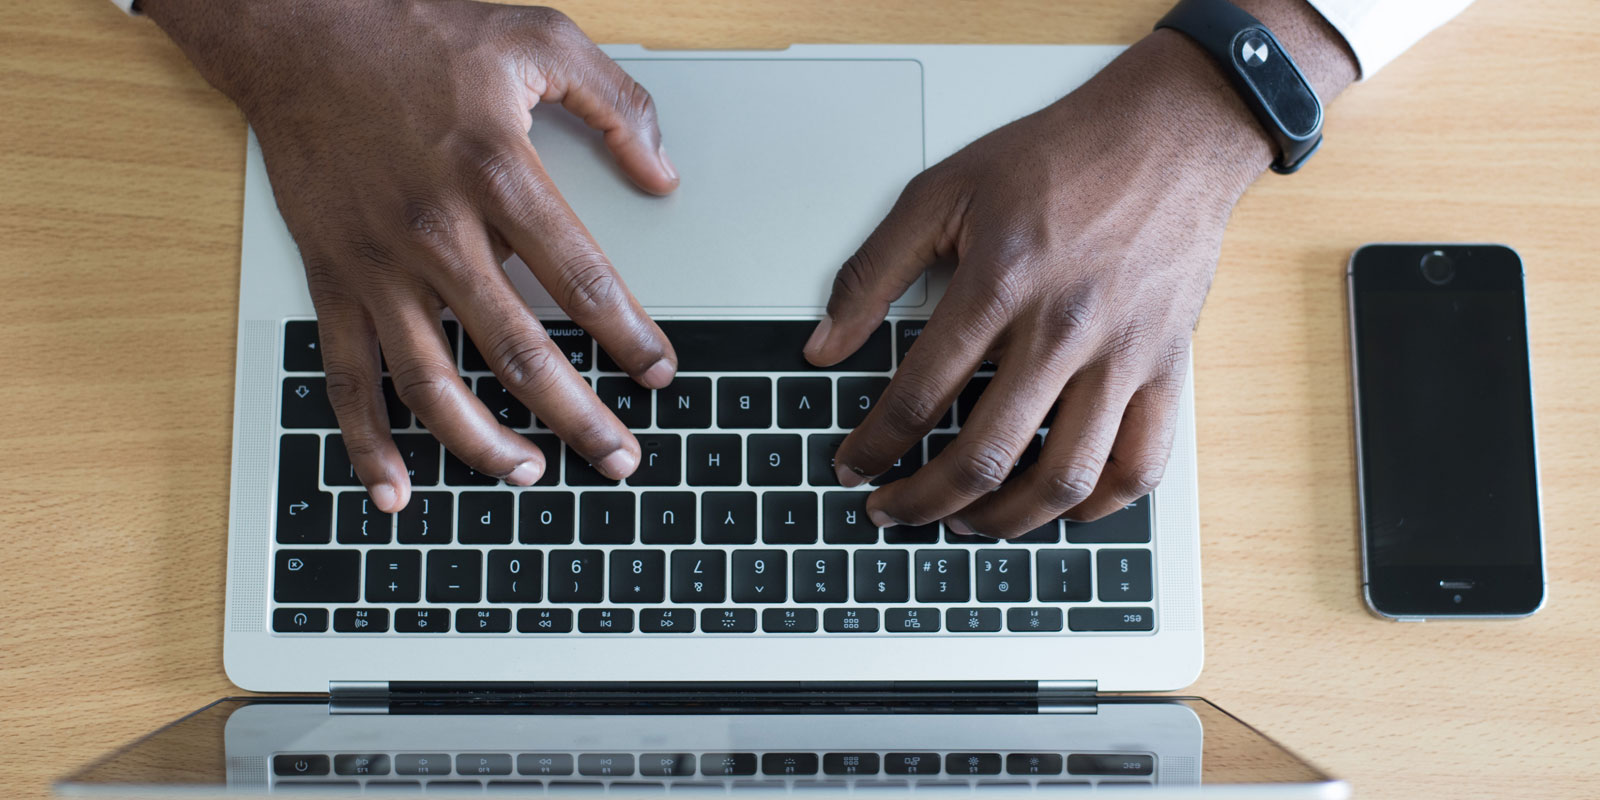 Top down view of a person typing on a laptop